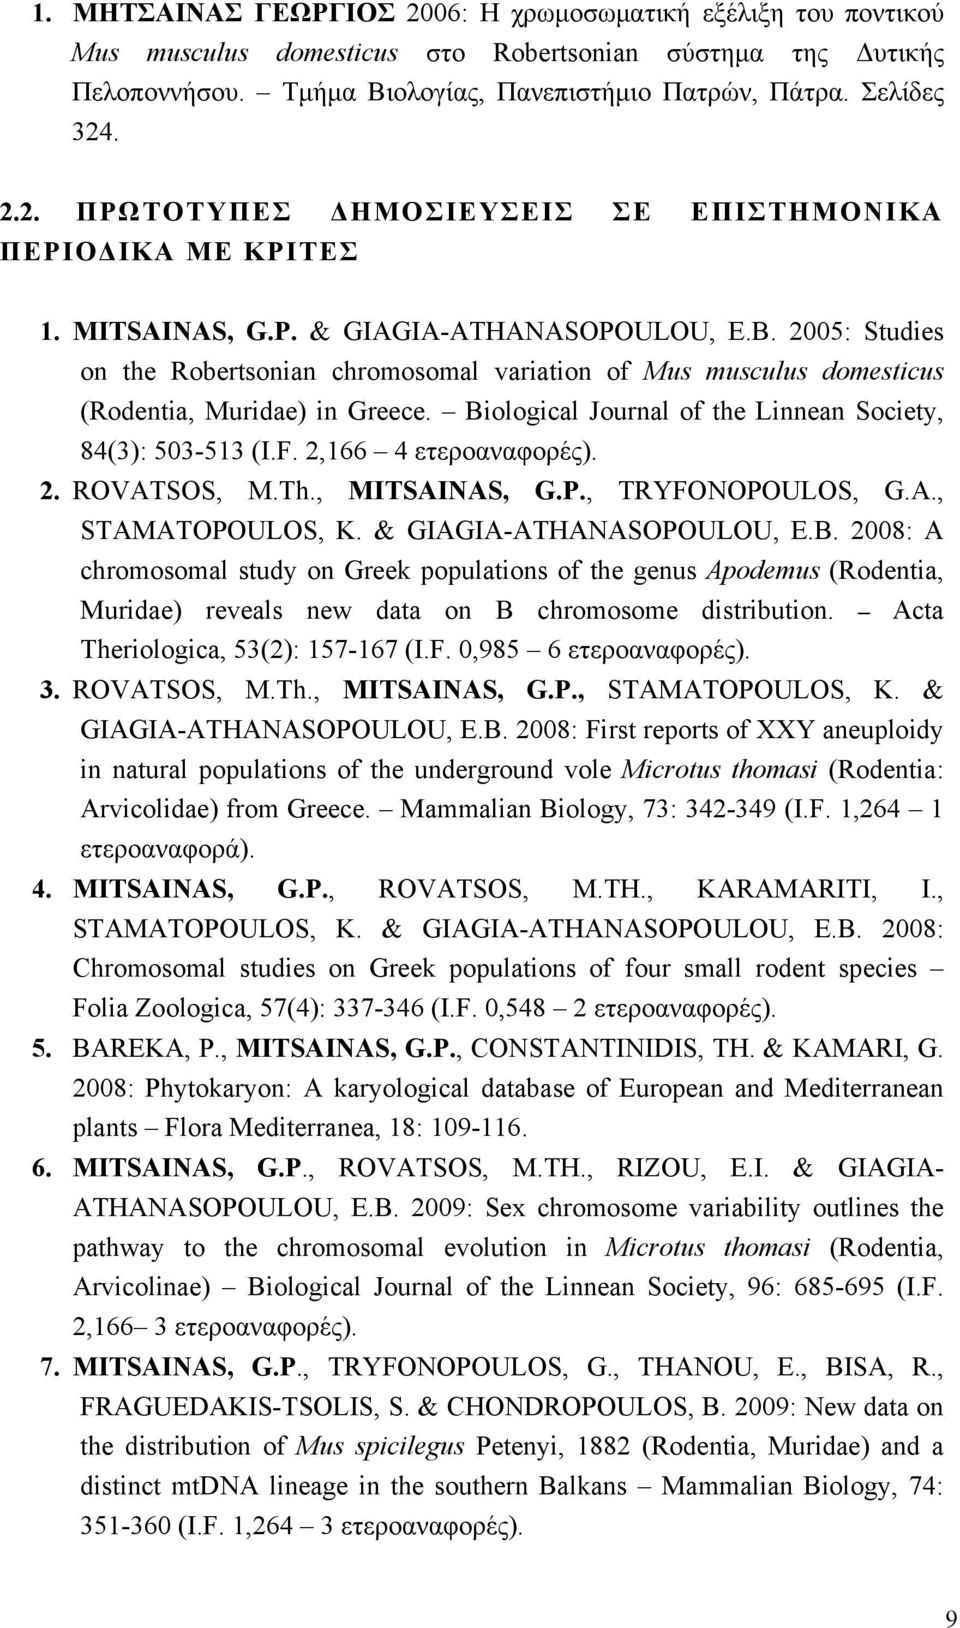 Biological Journal of the Linnean Society, 84(3): 503-513 (I.F. 2,166 4 ετεροαναφορές). 2. ROVATSOS, Μ.Th., MITSAINAS, G.P., TRYFONOPOULOS, G.A., STAMATOPOULOS, K. & GIAGIA-ATHANASOPOULOU, E.B. 2008: A chromosomal study on Greek populations of the genus Apodemus (Rodentia, Muridae) reveals new data on B chromosome distribution.